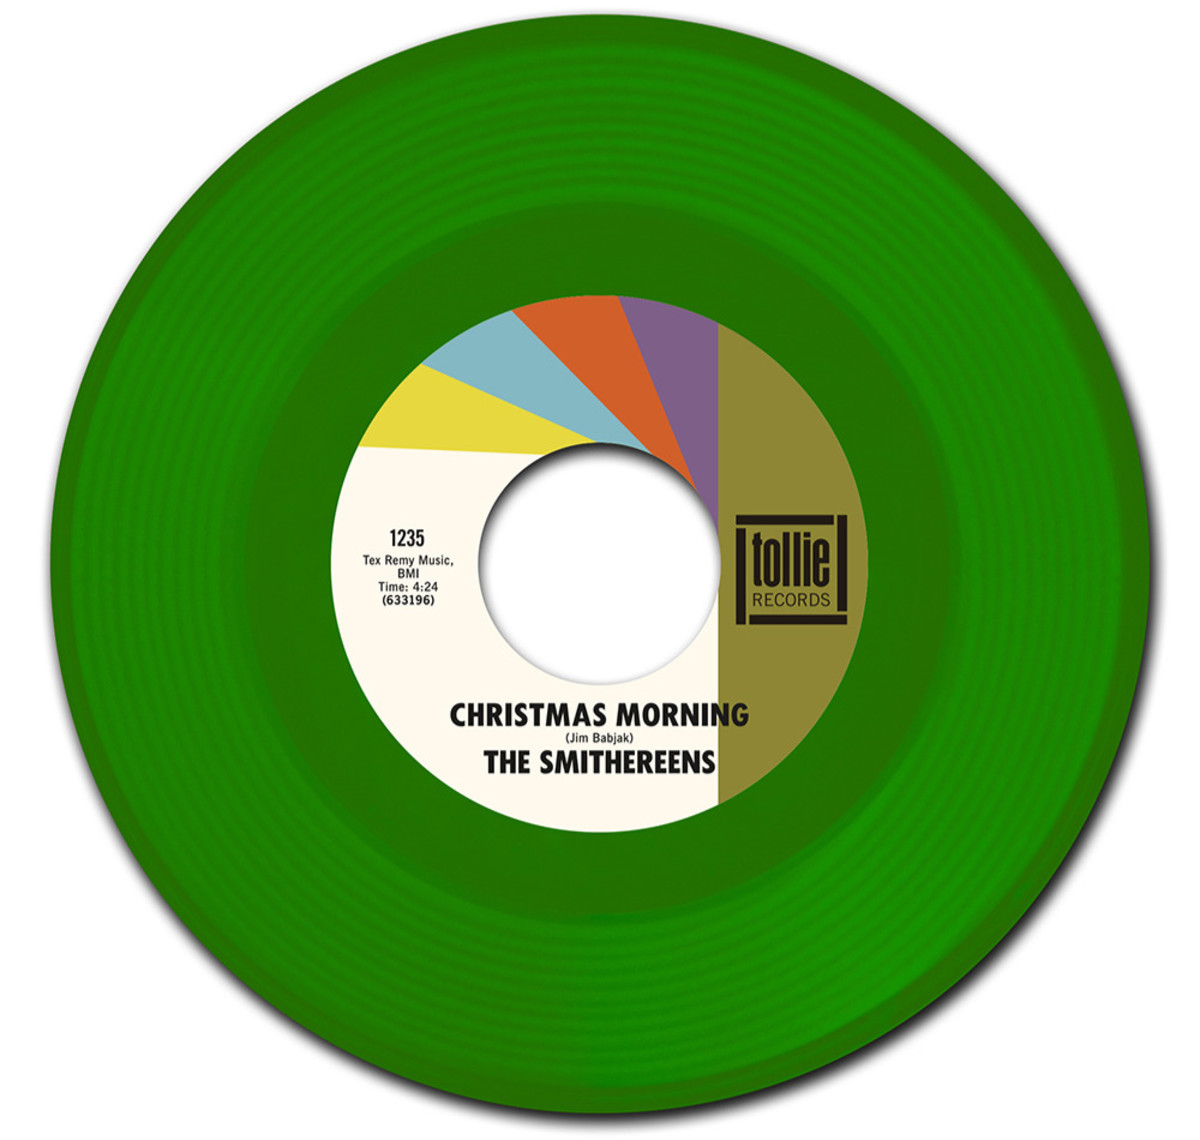 """The seven-inch, green vinyl 45-RPM version of The Smithereens' """"Christmas Morning"""" single is shown here."""